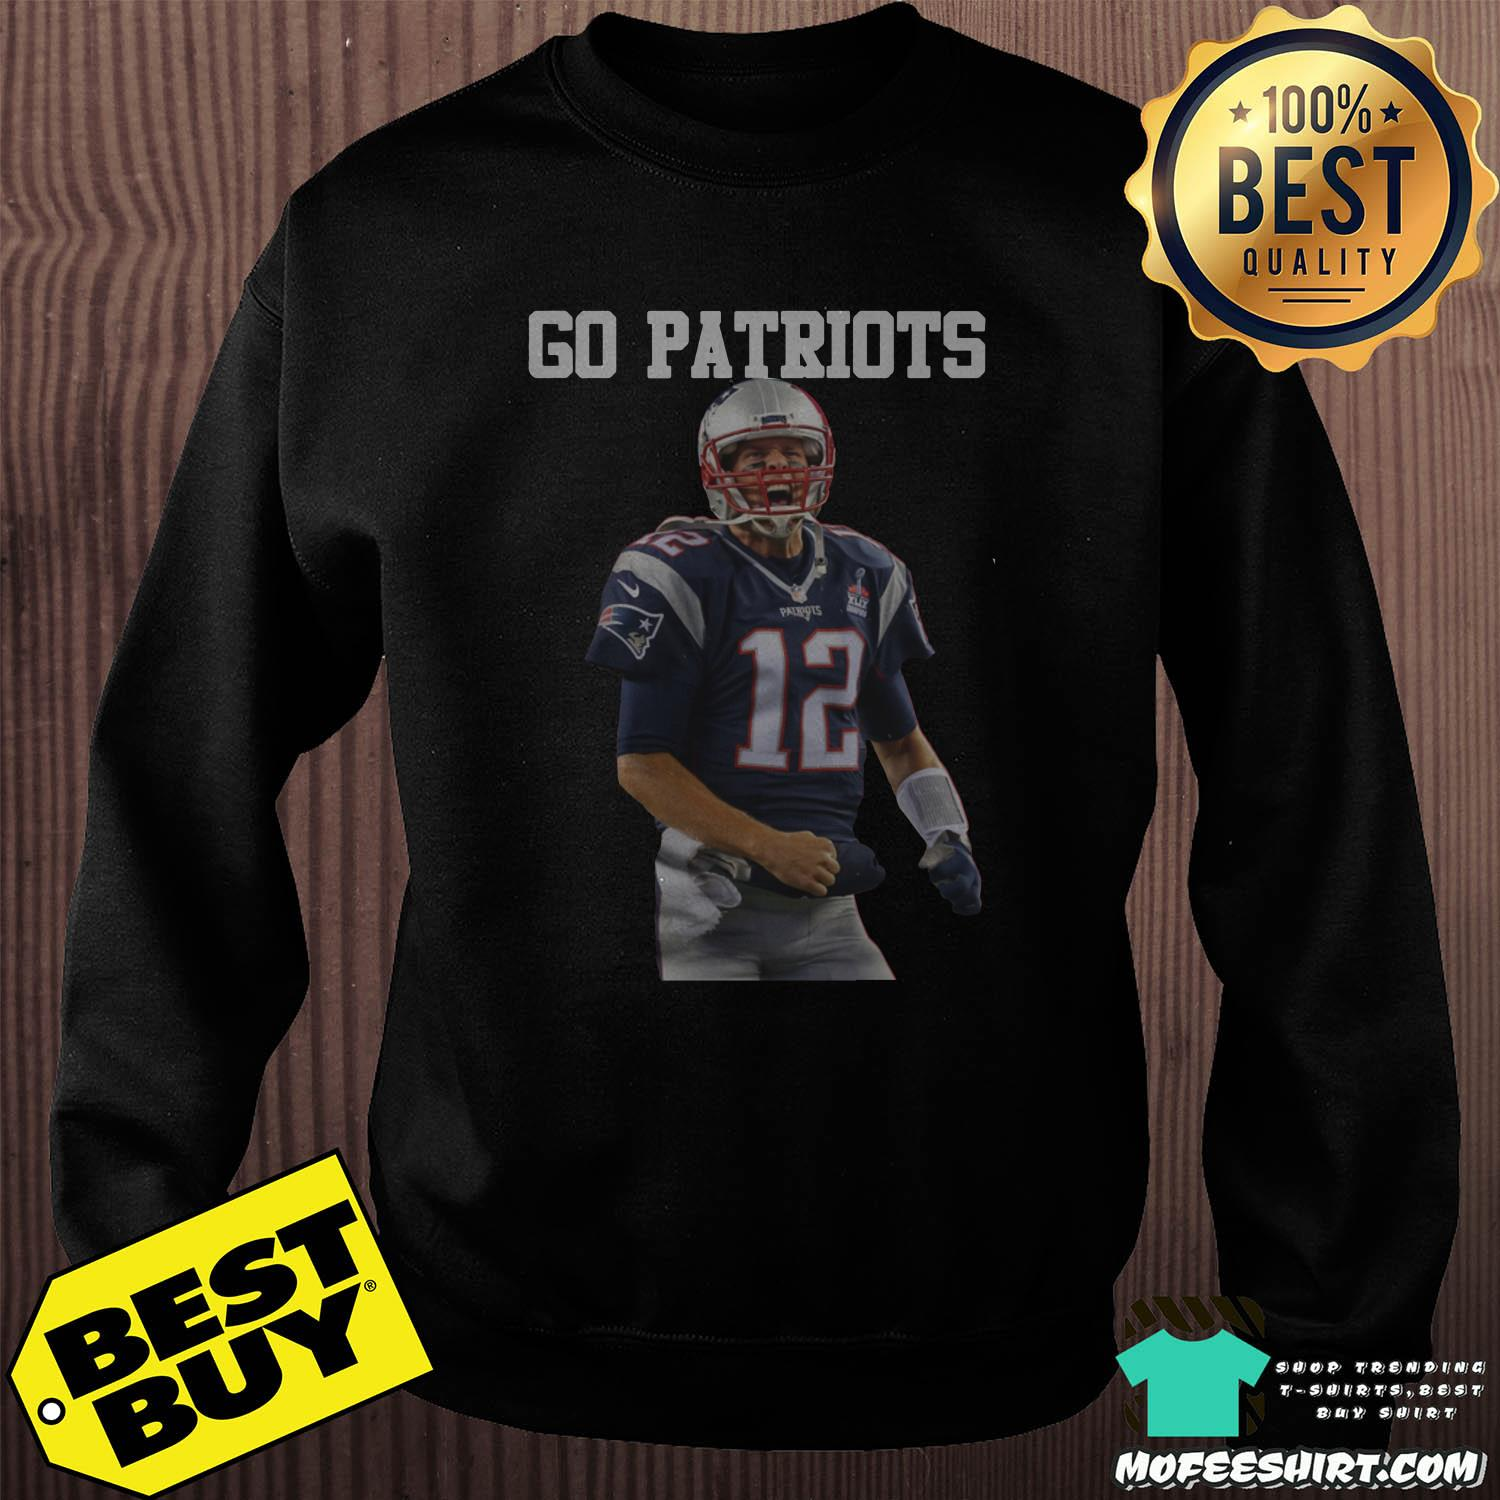 tom brady go patriots 12 rugby sweatshirt - Tom Brady Go Patriots 12 Rugby Shirt